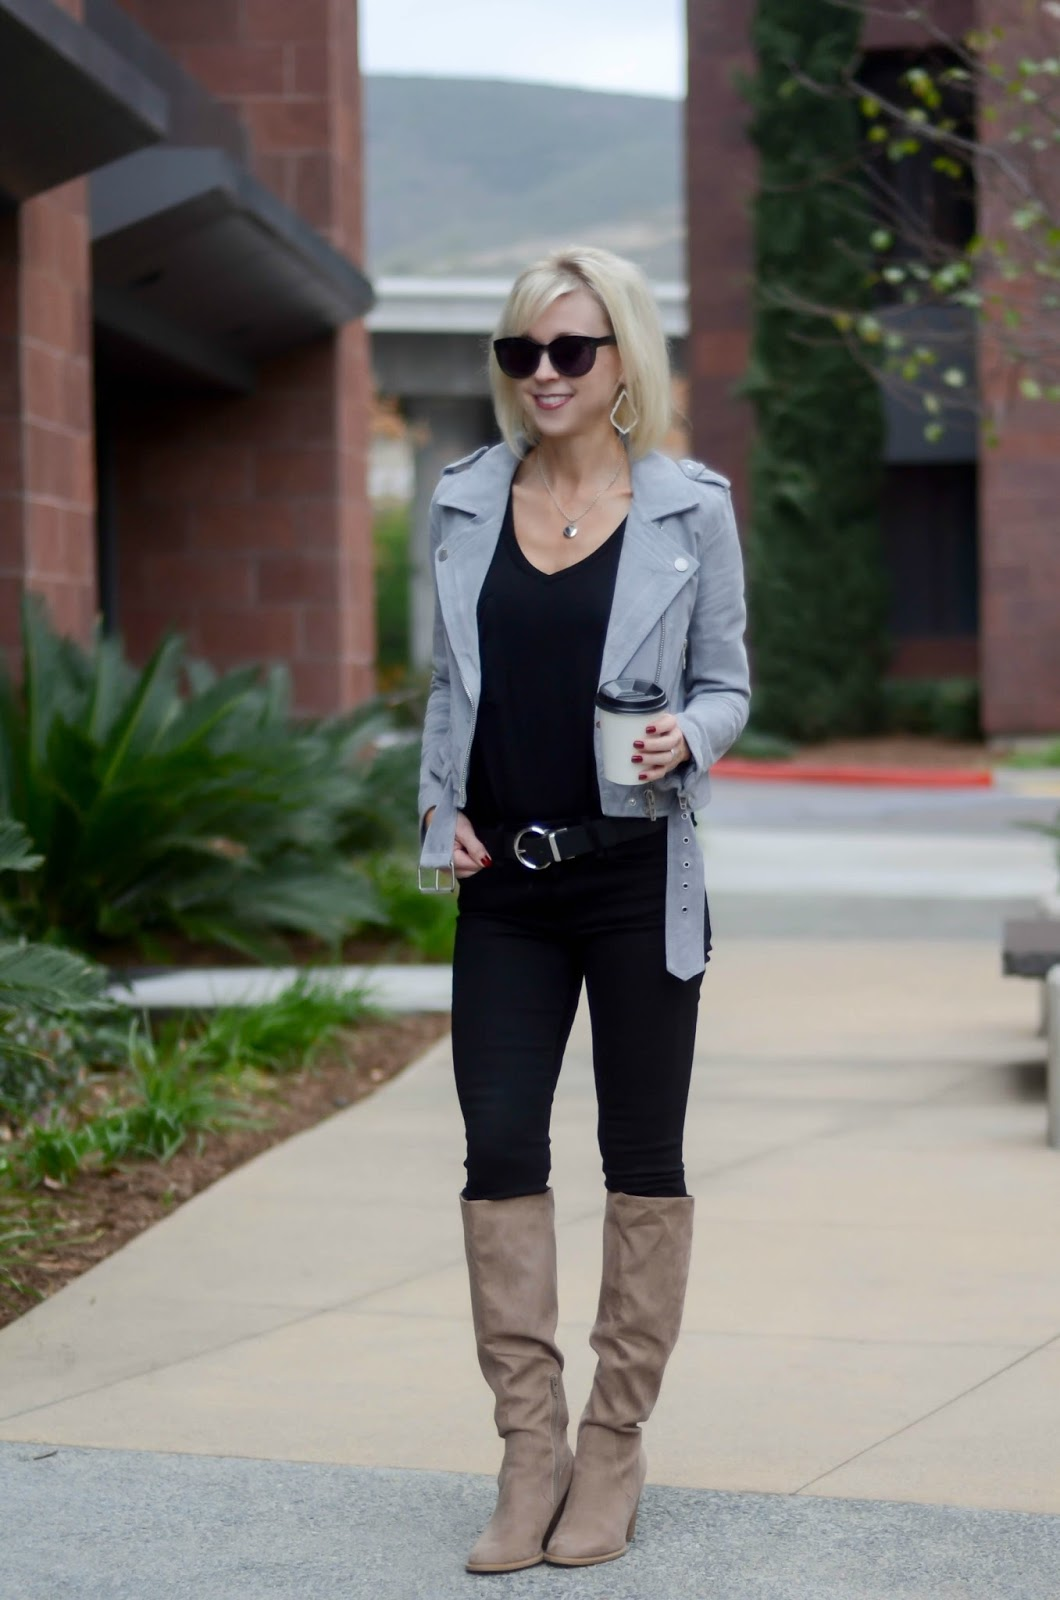 to wear - How to moto wear booties video